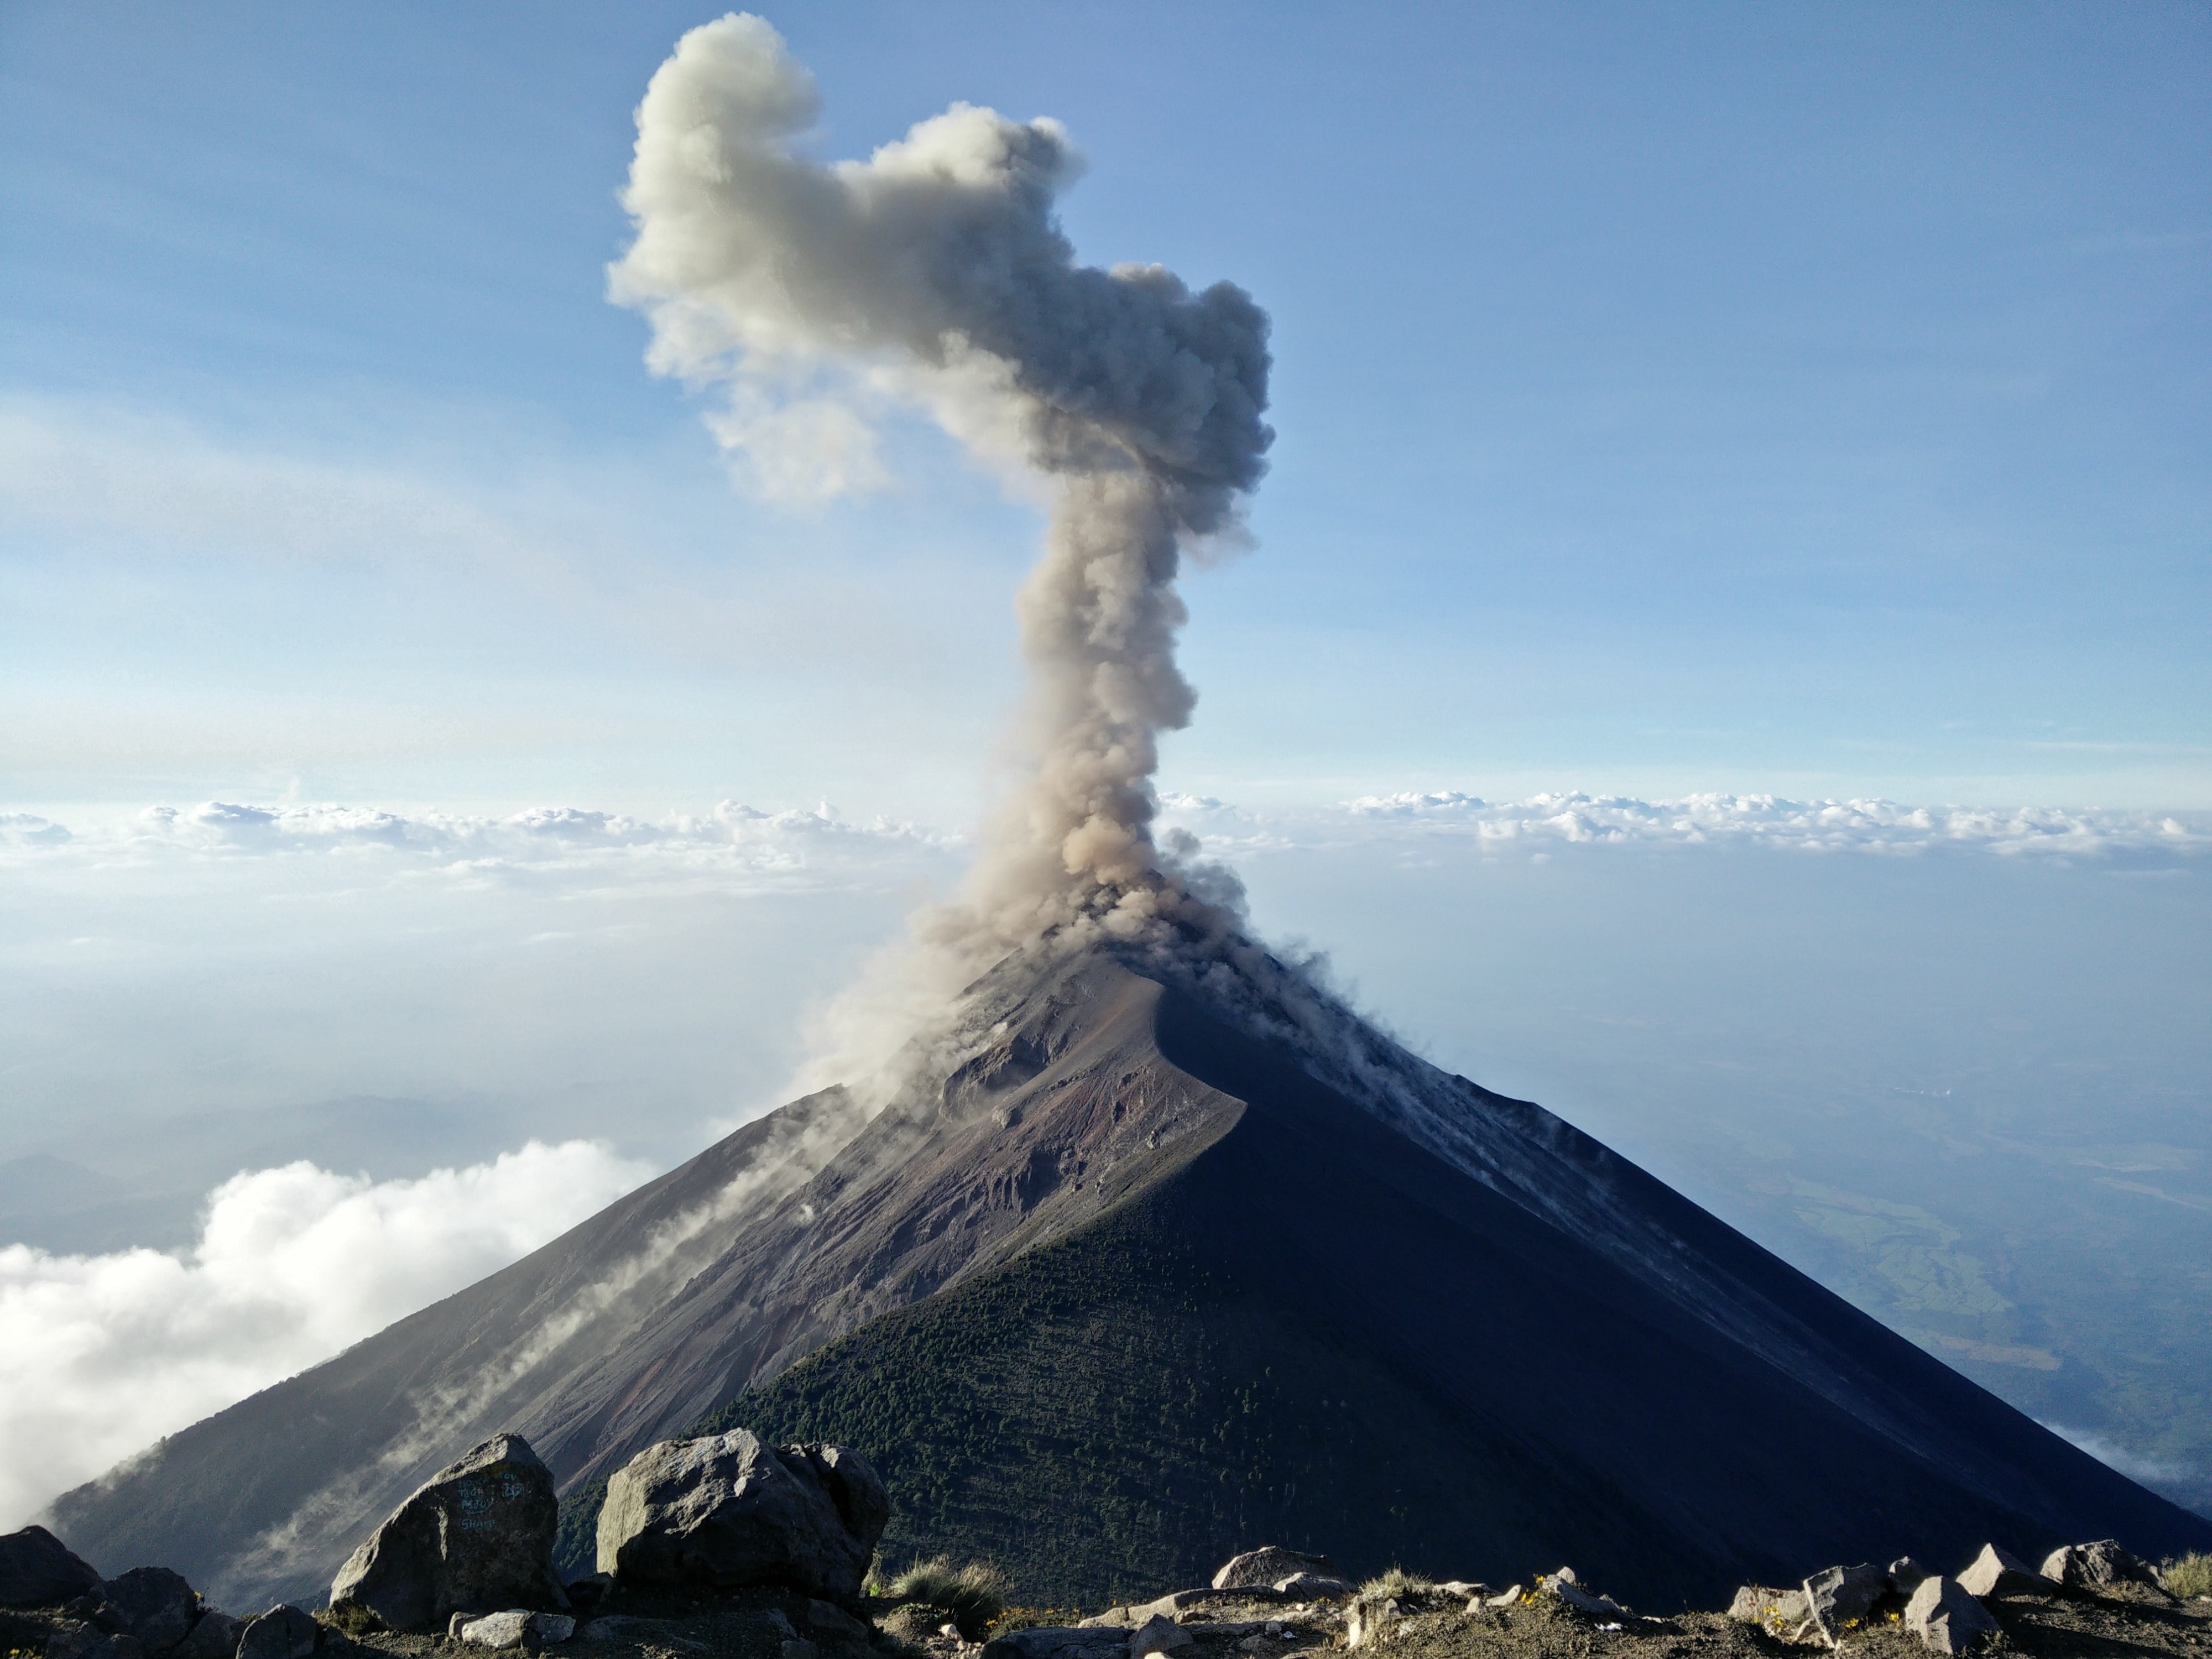 A conical volcano emitting gas and smoke from its tip.